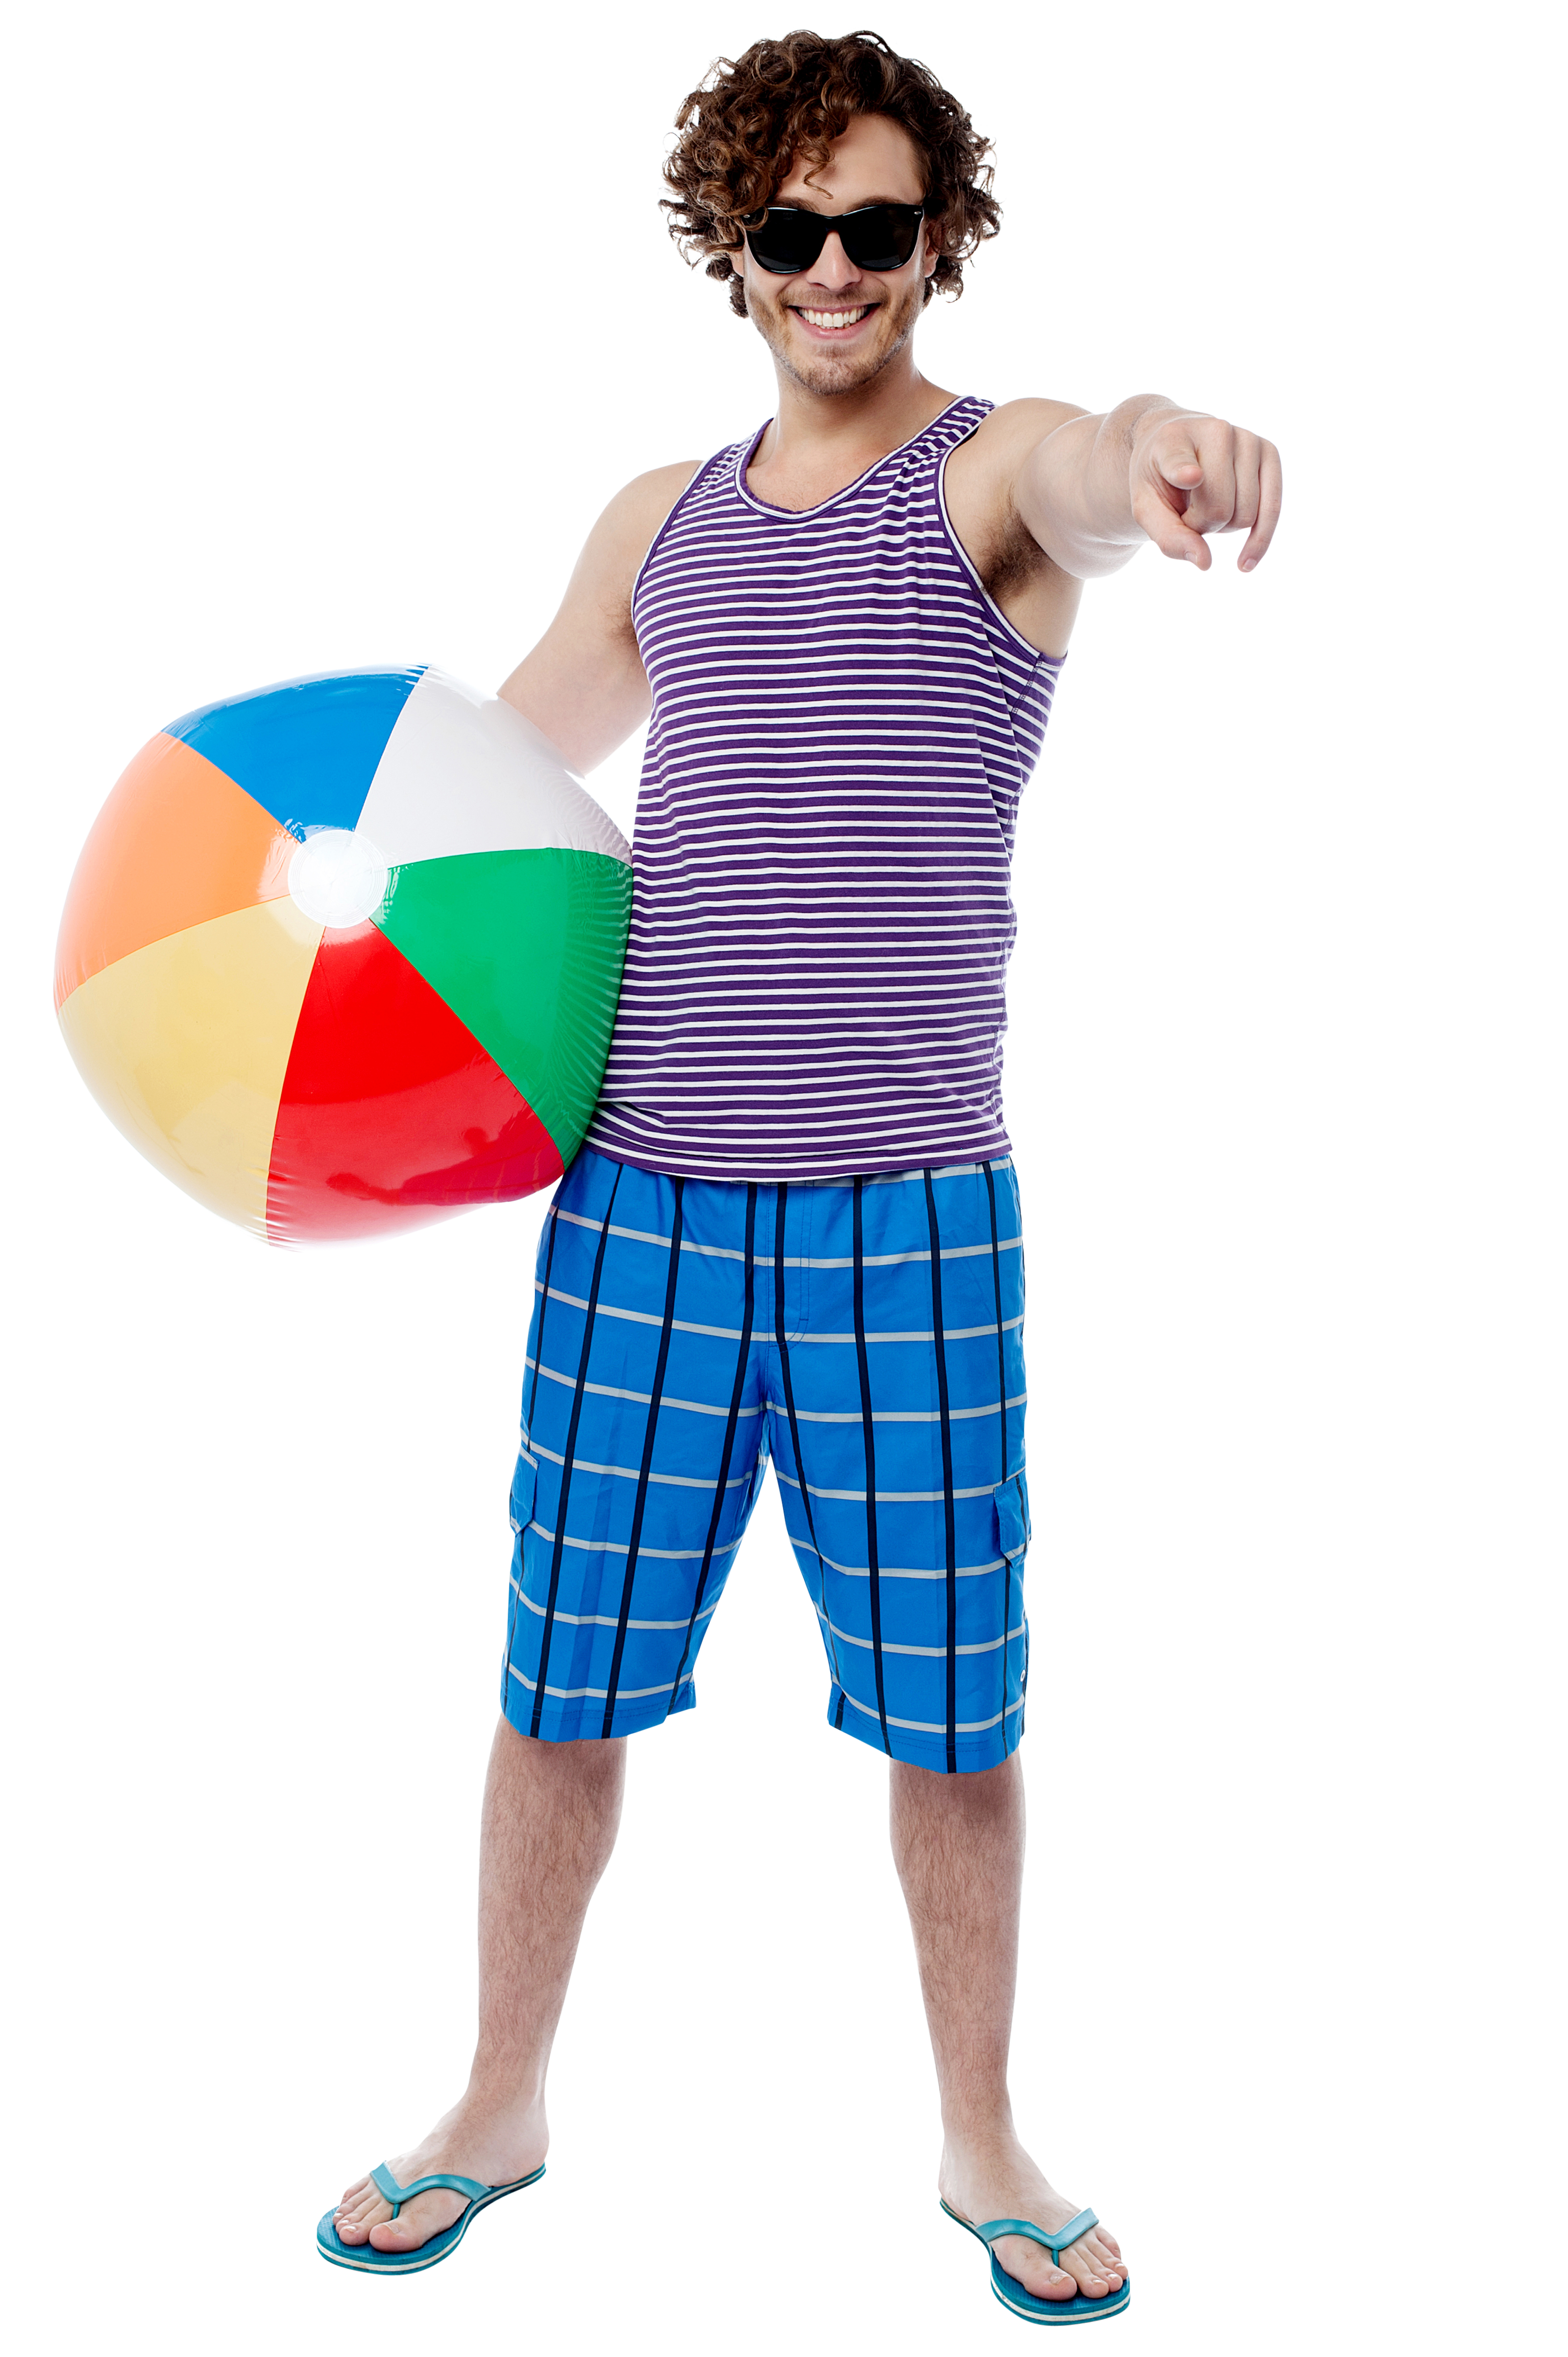 Men With Beach Ball Royalty-Free PNG Image - Beach Boy PNG